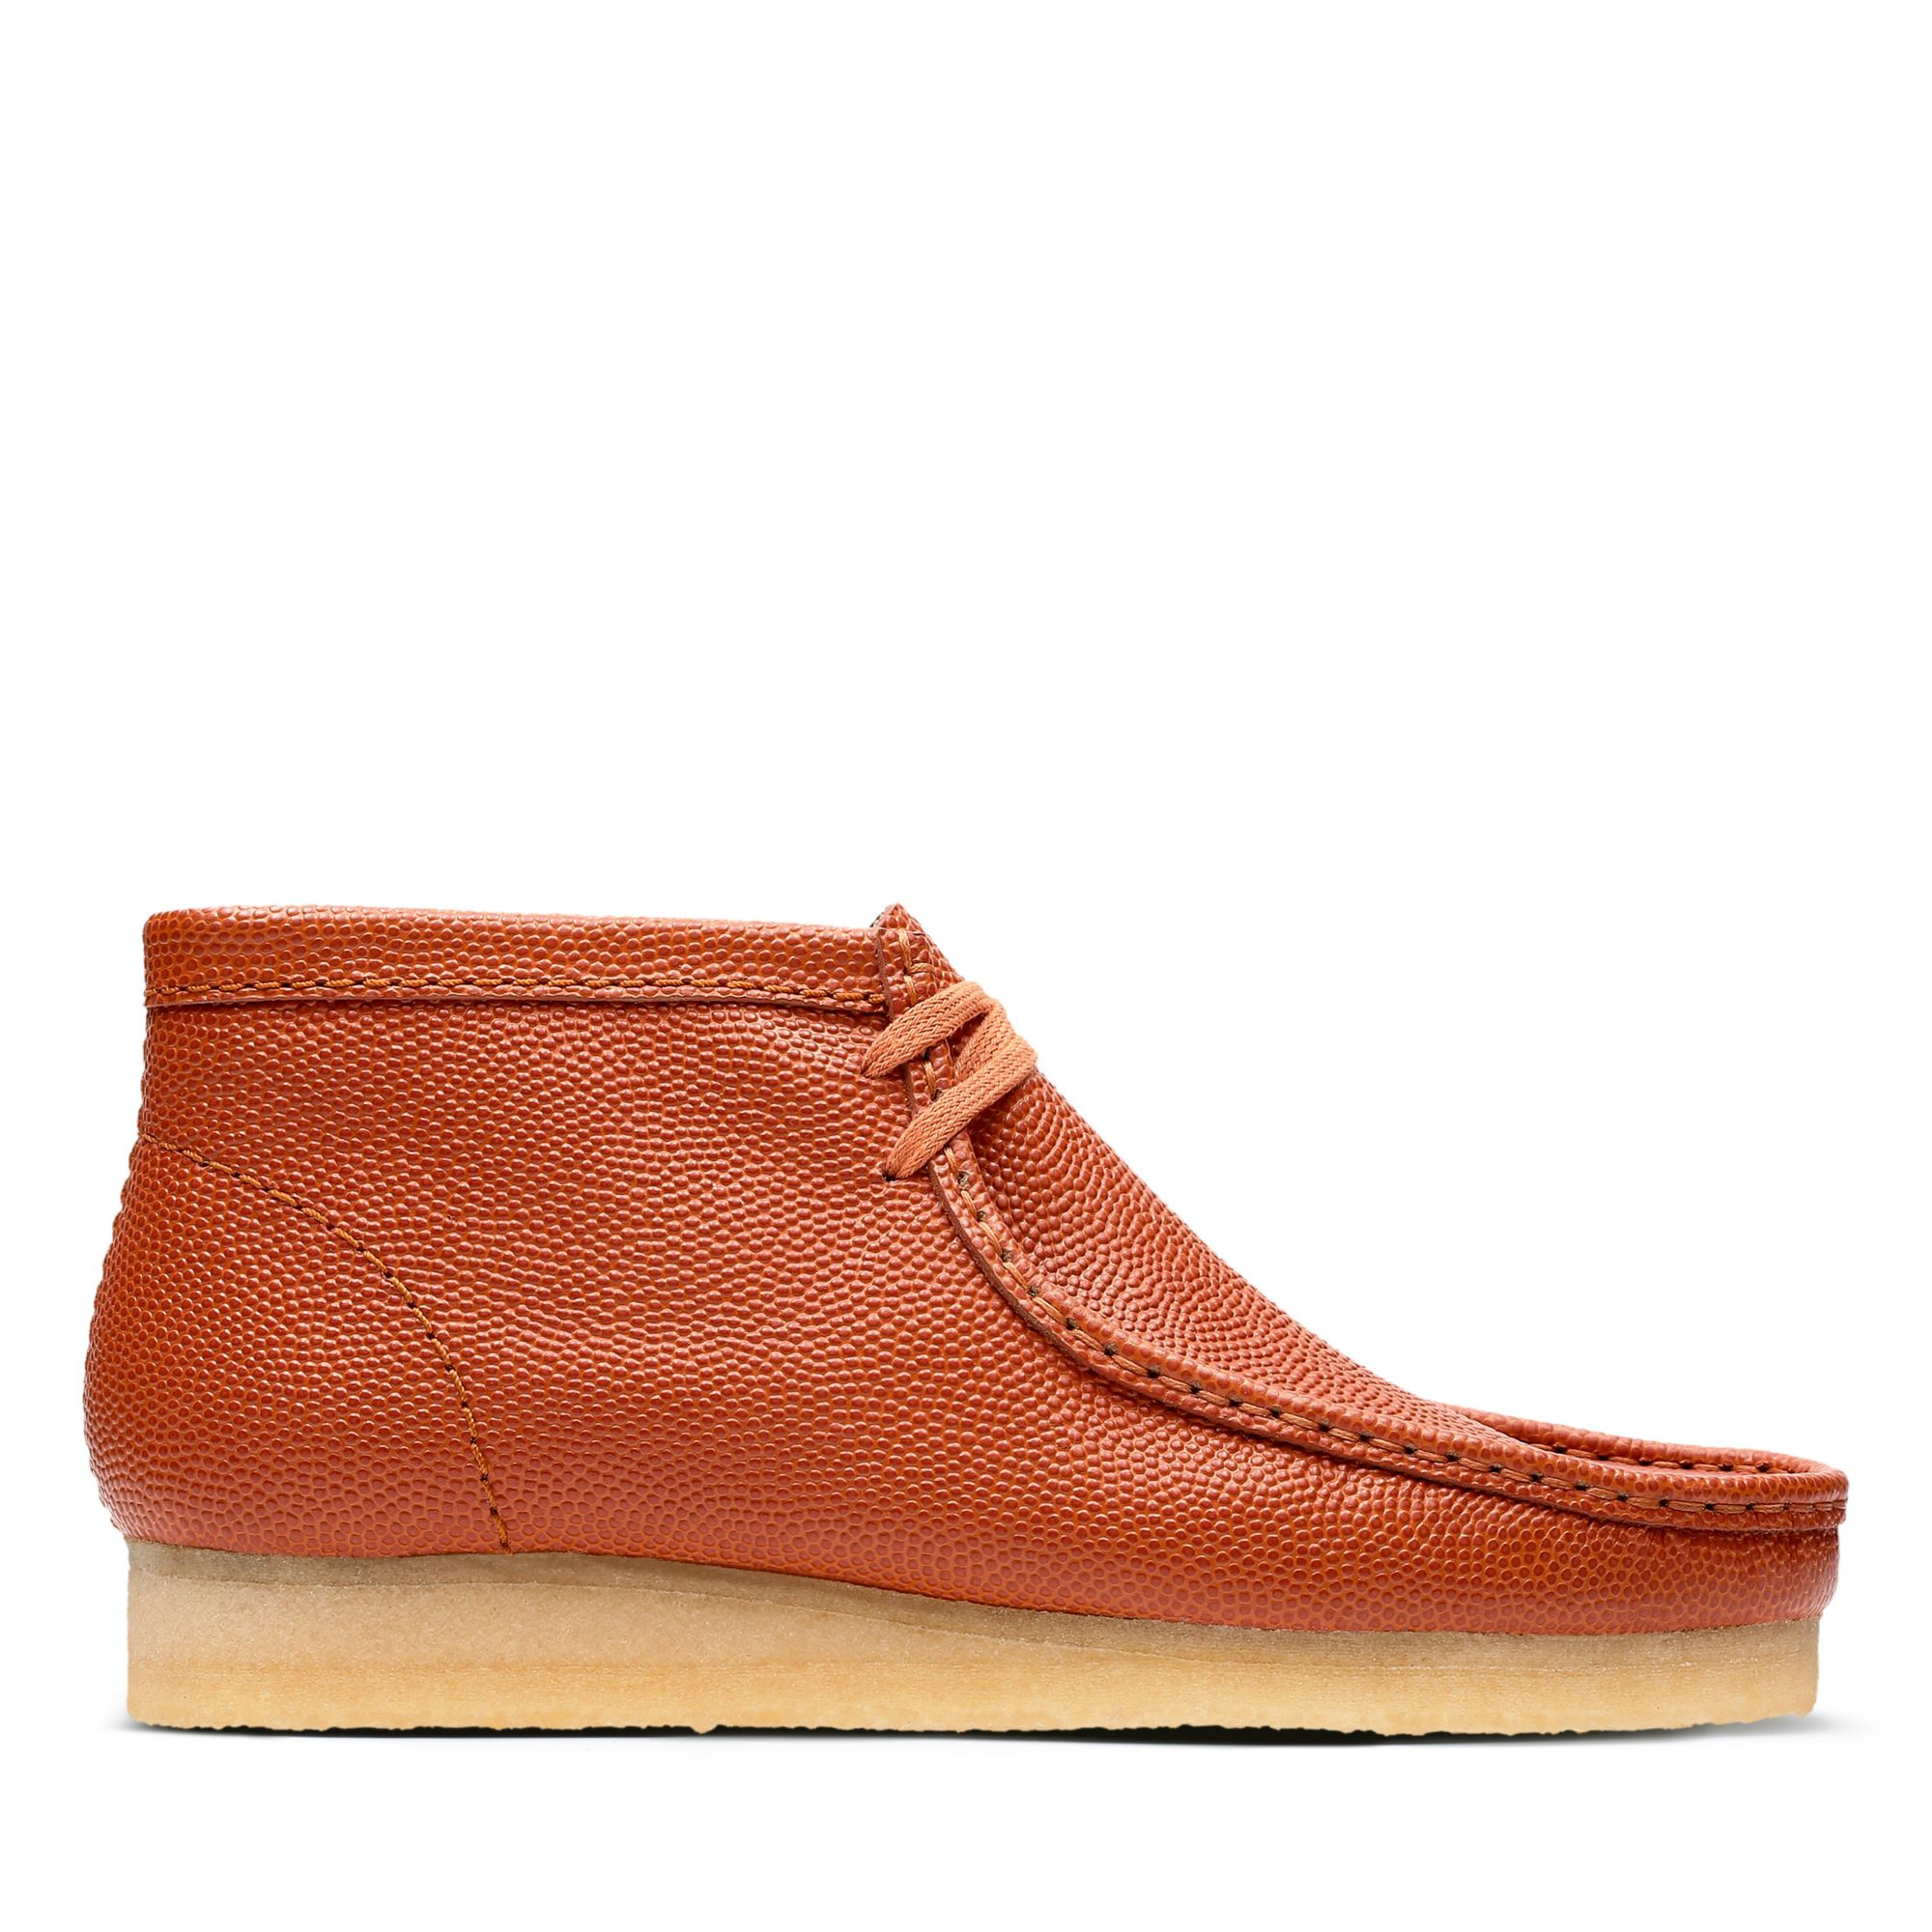 Mens Vintage Style Shoes| Retro Classic Shoes Clarks Wallabee Boot - Orange Leather - Mens 13 Medium $240.00 AT vintagedancer.com